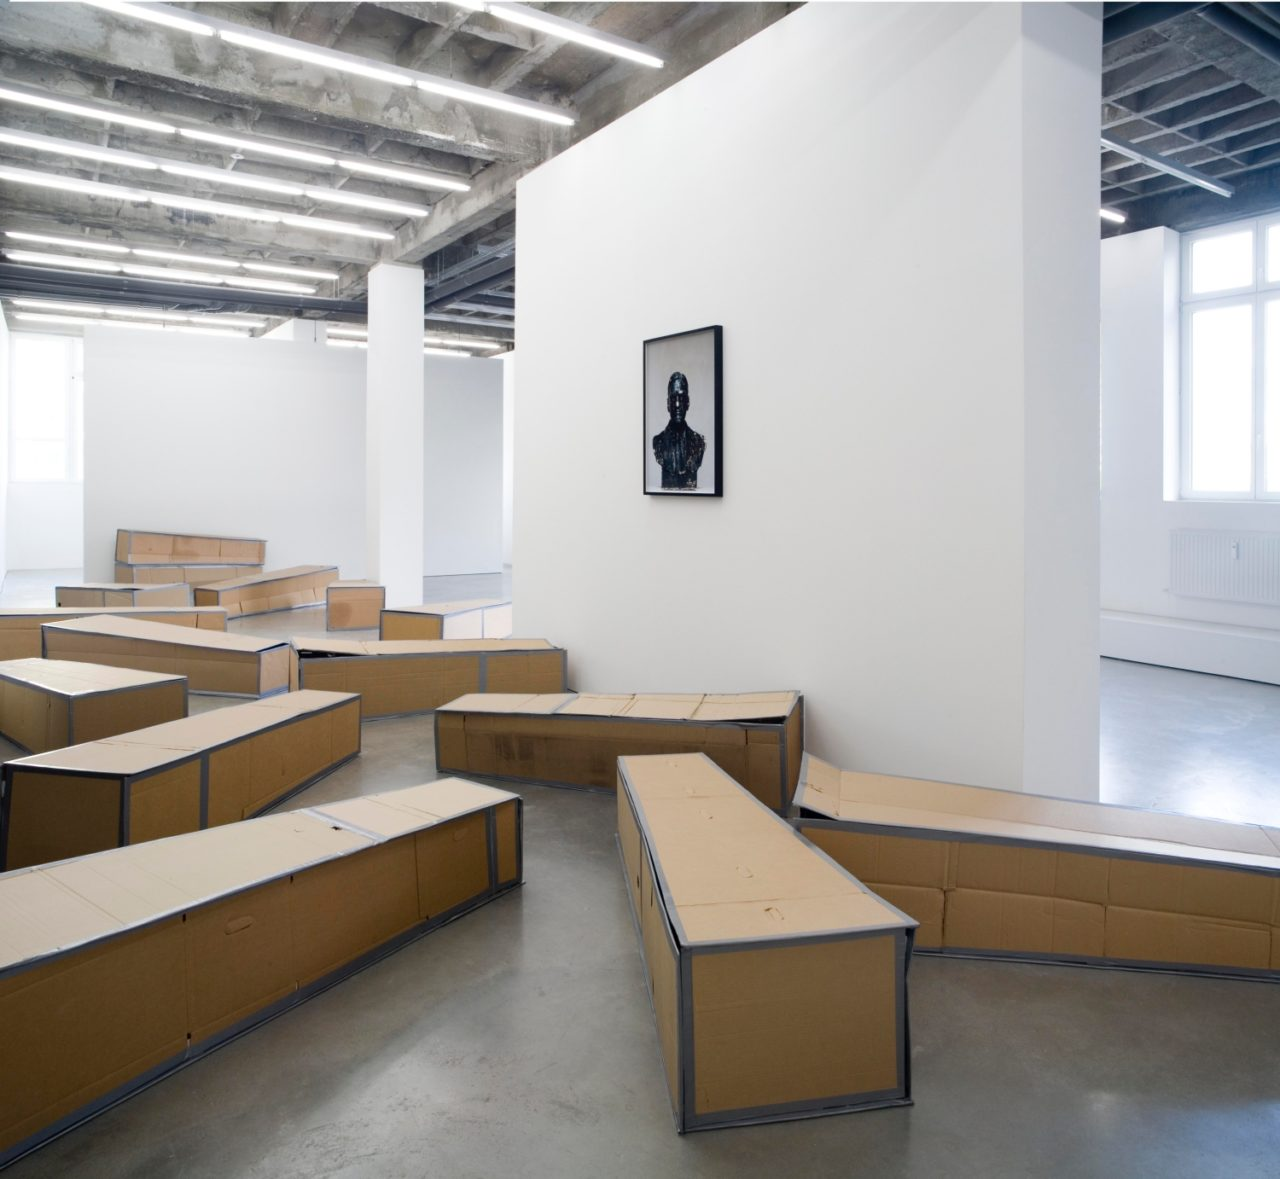 Wall: Rodney McMillian, Unknown #12 (2006); Floor: Rodney McMillian, 18 boxes (2006)